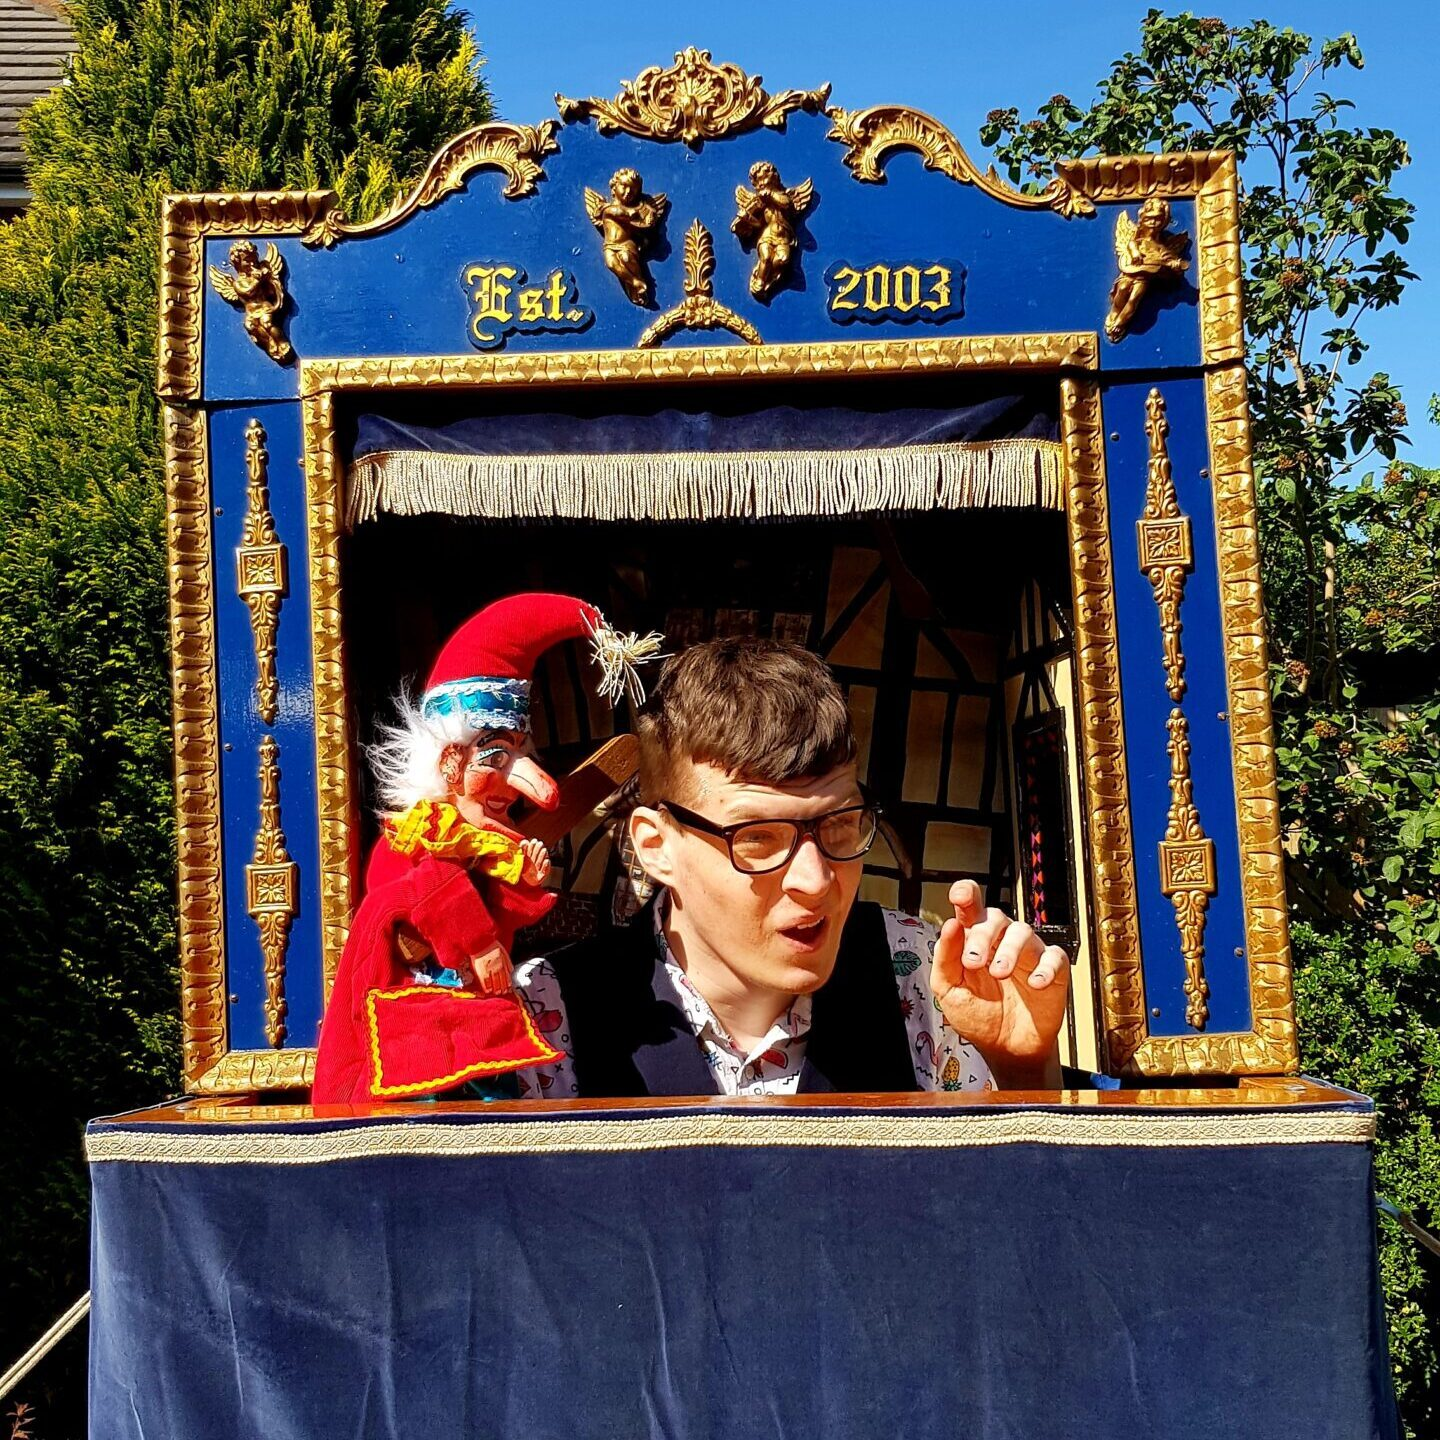 Mr Punch hitting Harvo inside the Punch and Judy Theatre